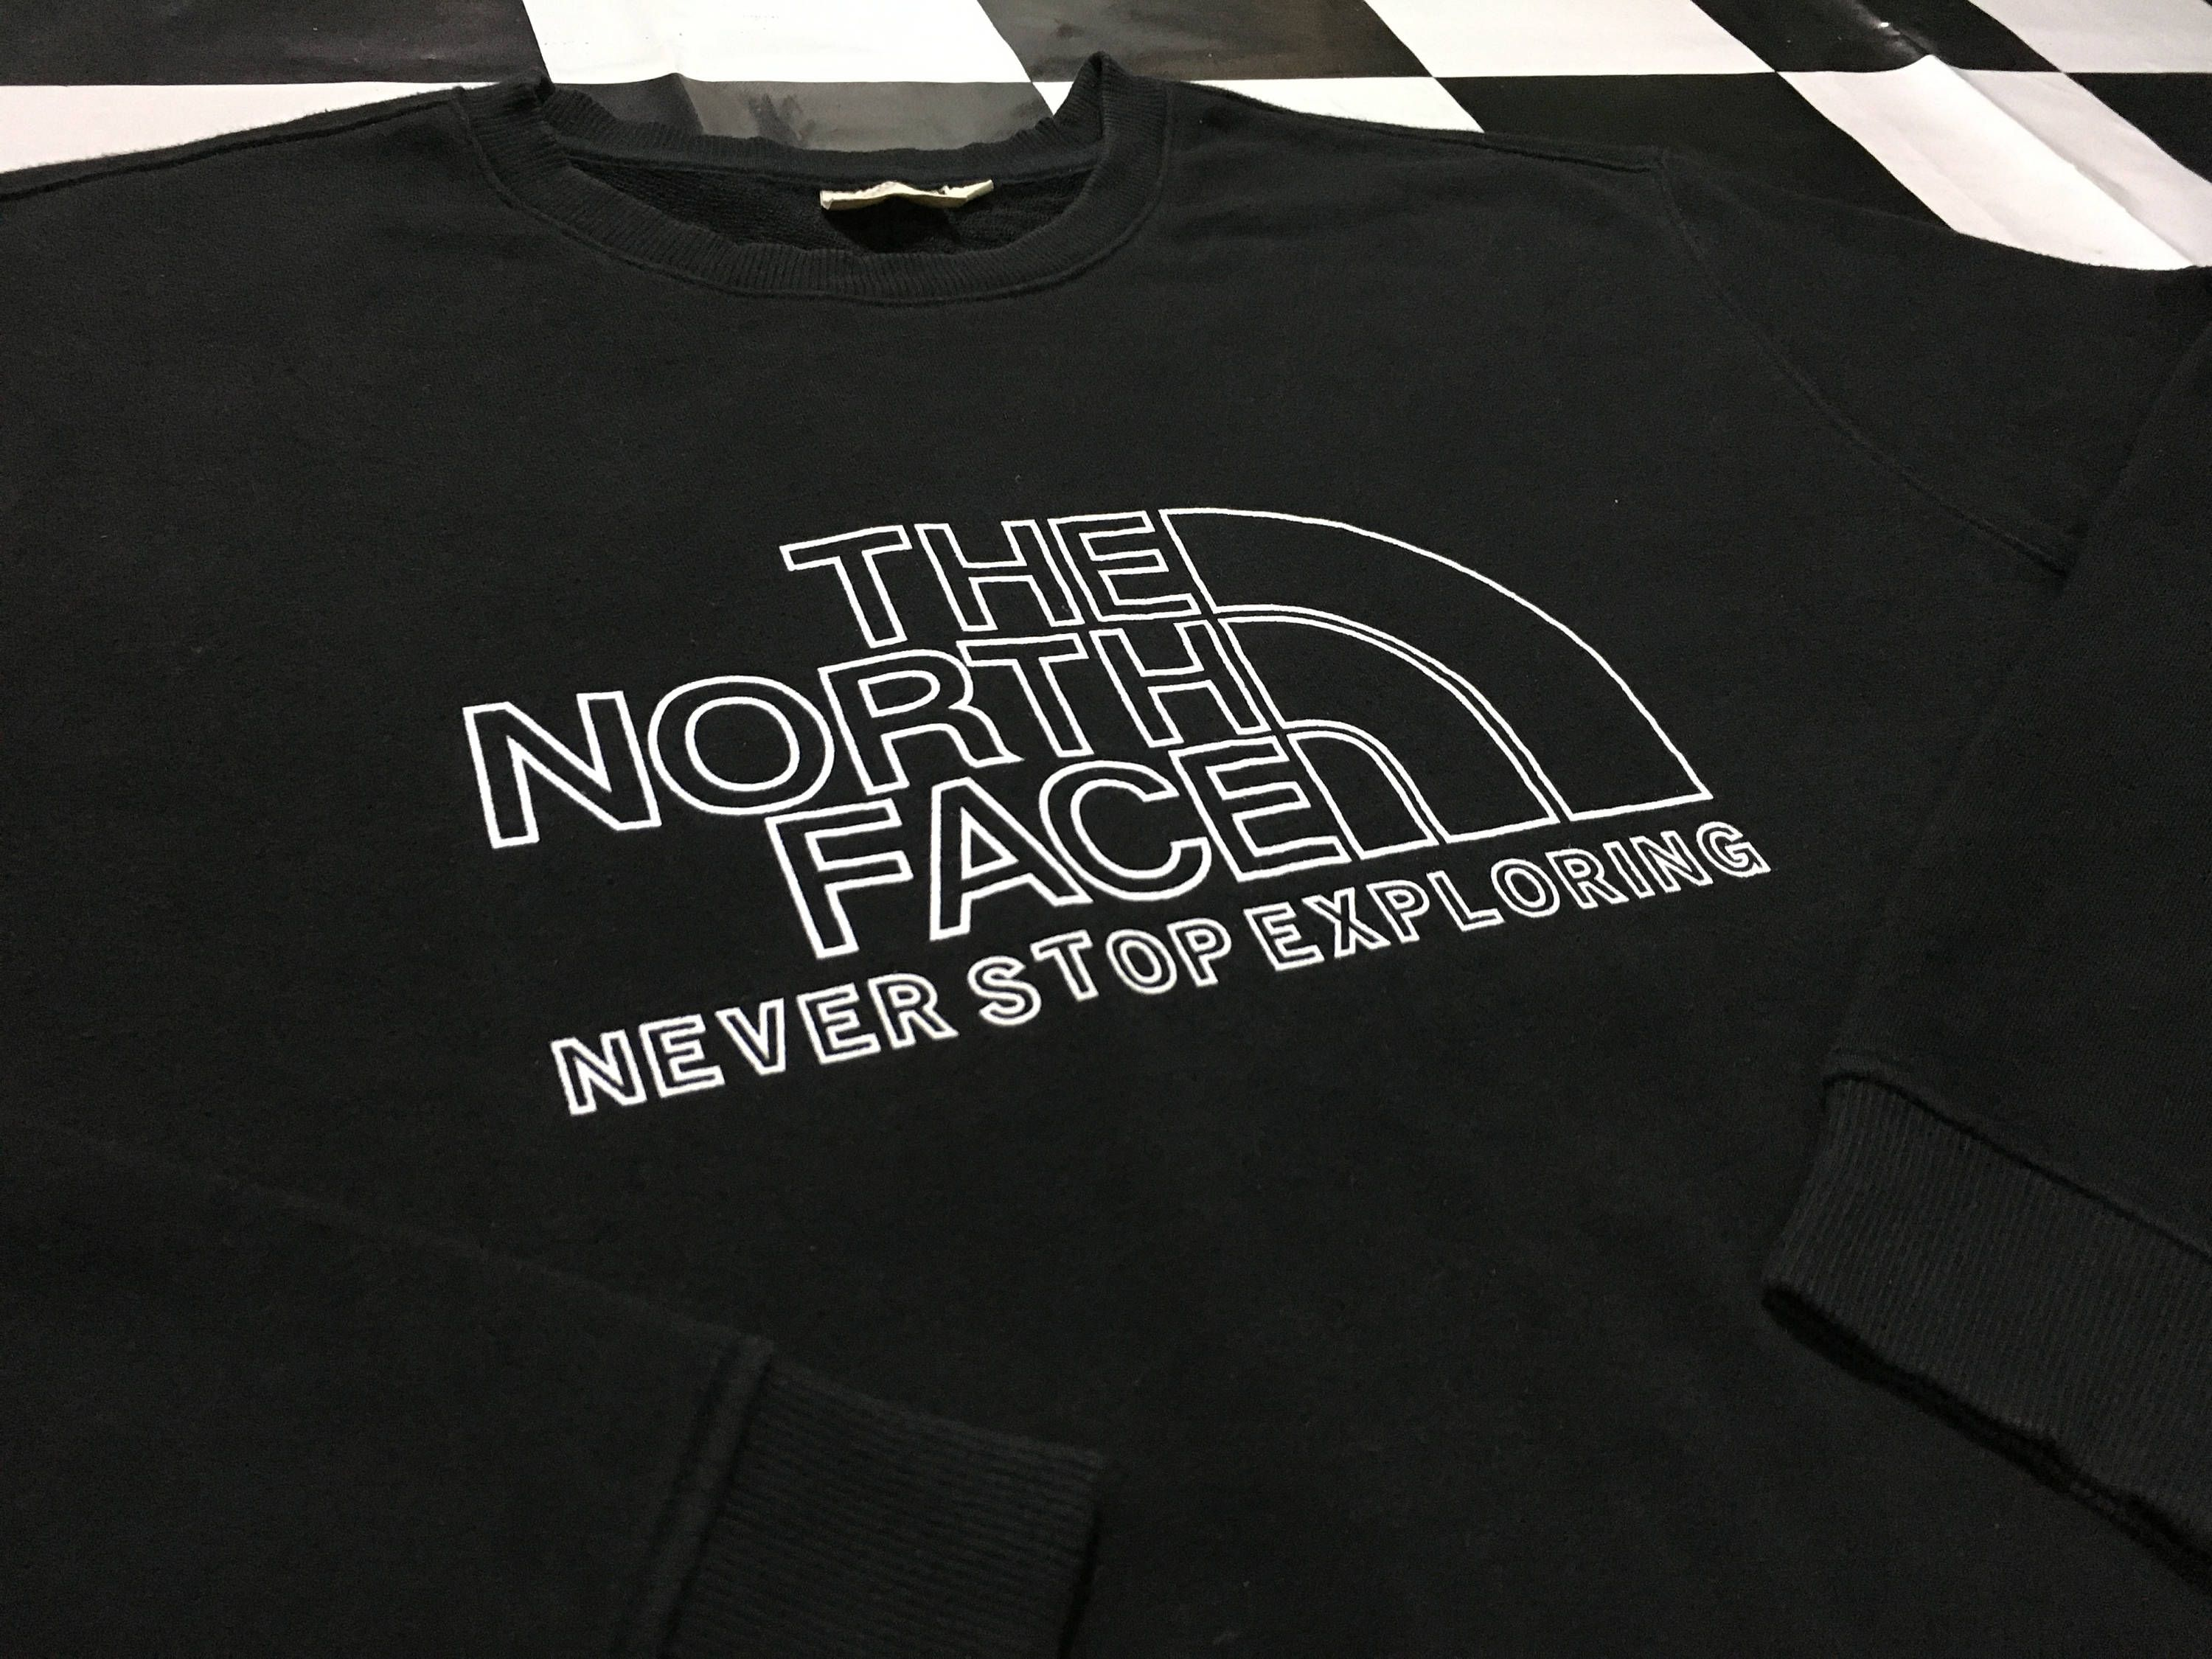 34b930550 Vintage The north face sweater big logo spell out Never stop ...